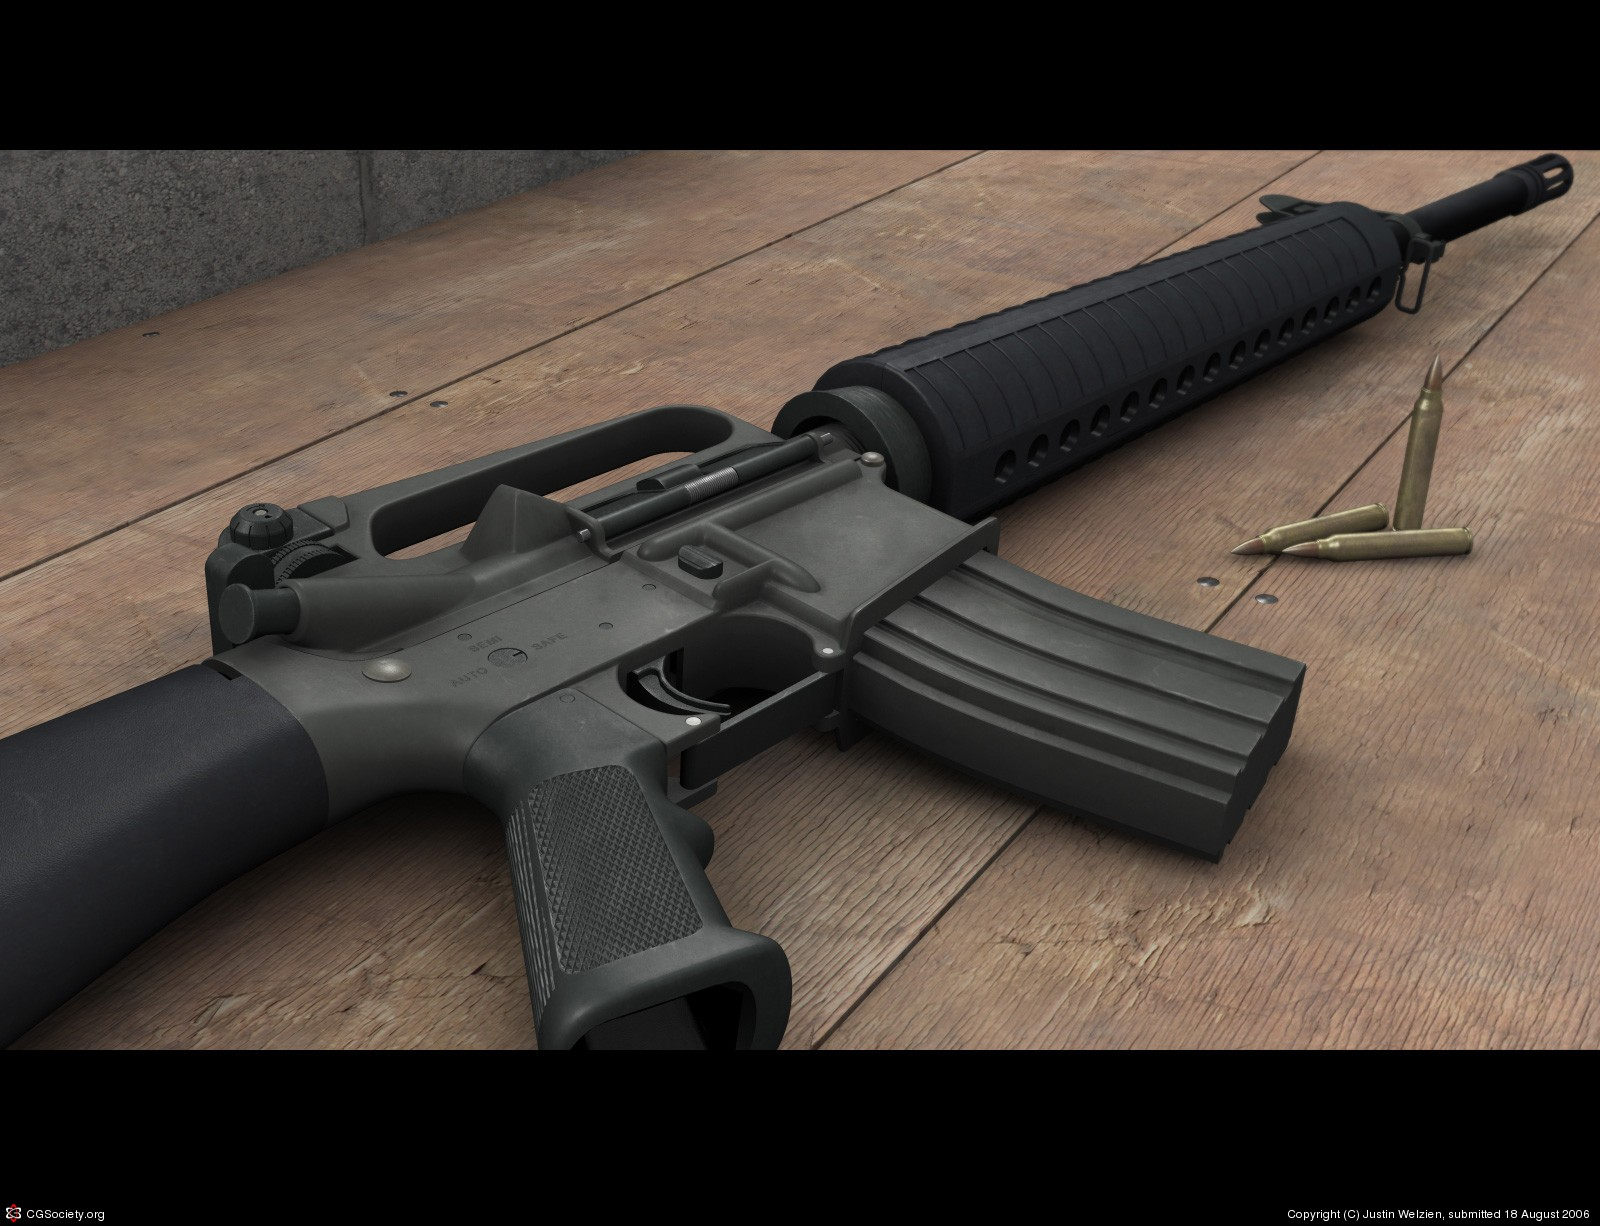 Deadly M-16 Rifle | Army and Weapons M16